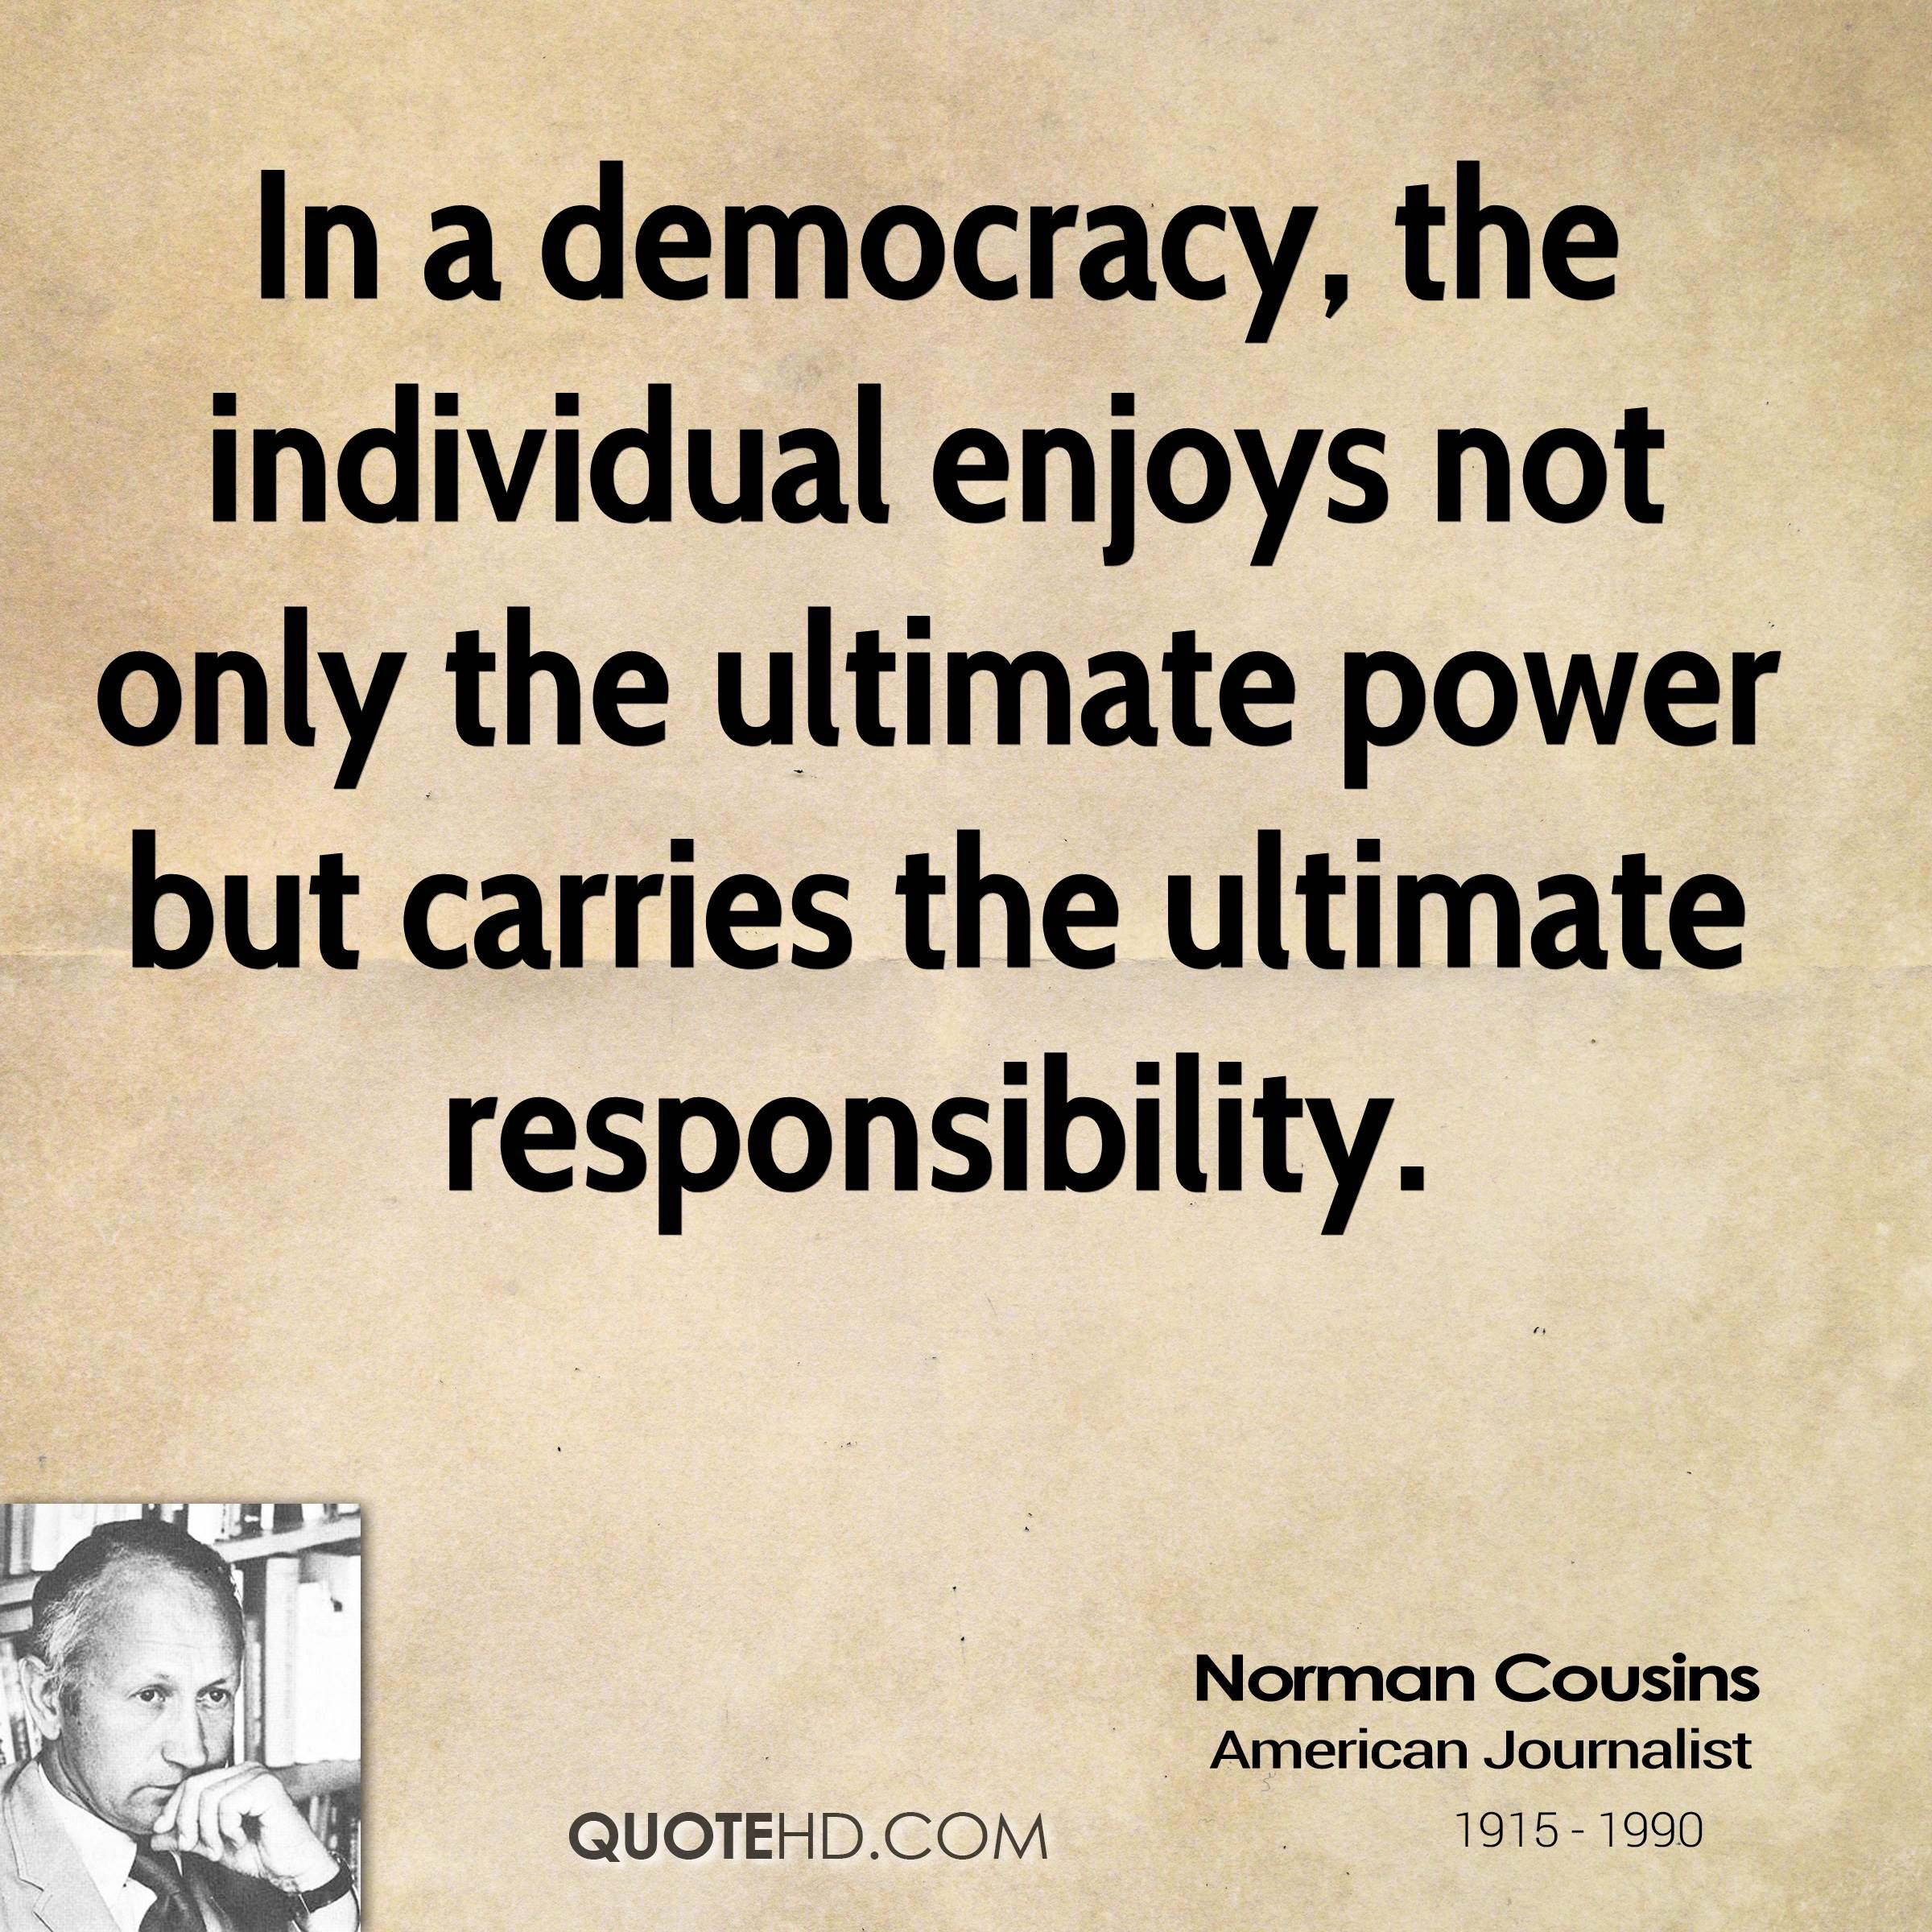 Charmant In A Democracy, The Individual Enjoys Not Only The Ultimate Power But  Carries The Ultimate